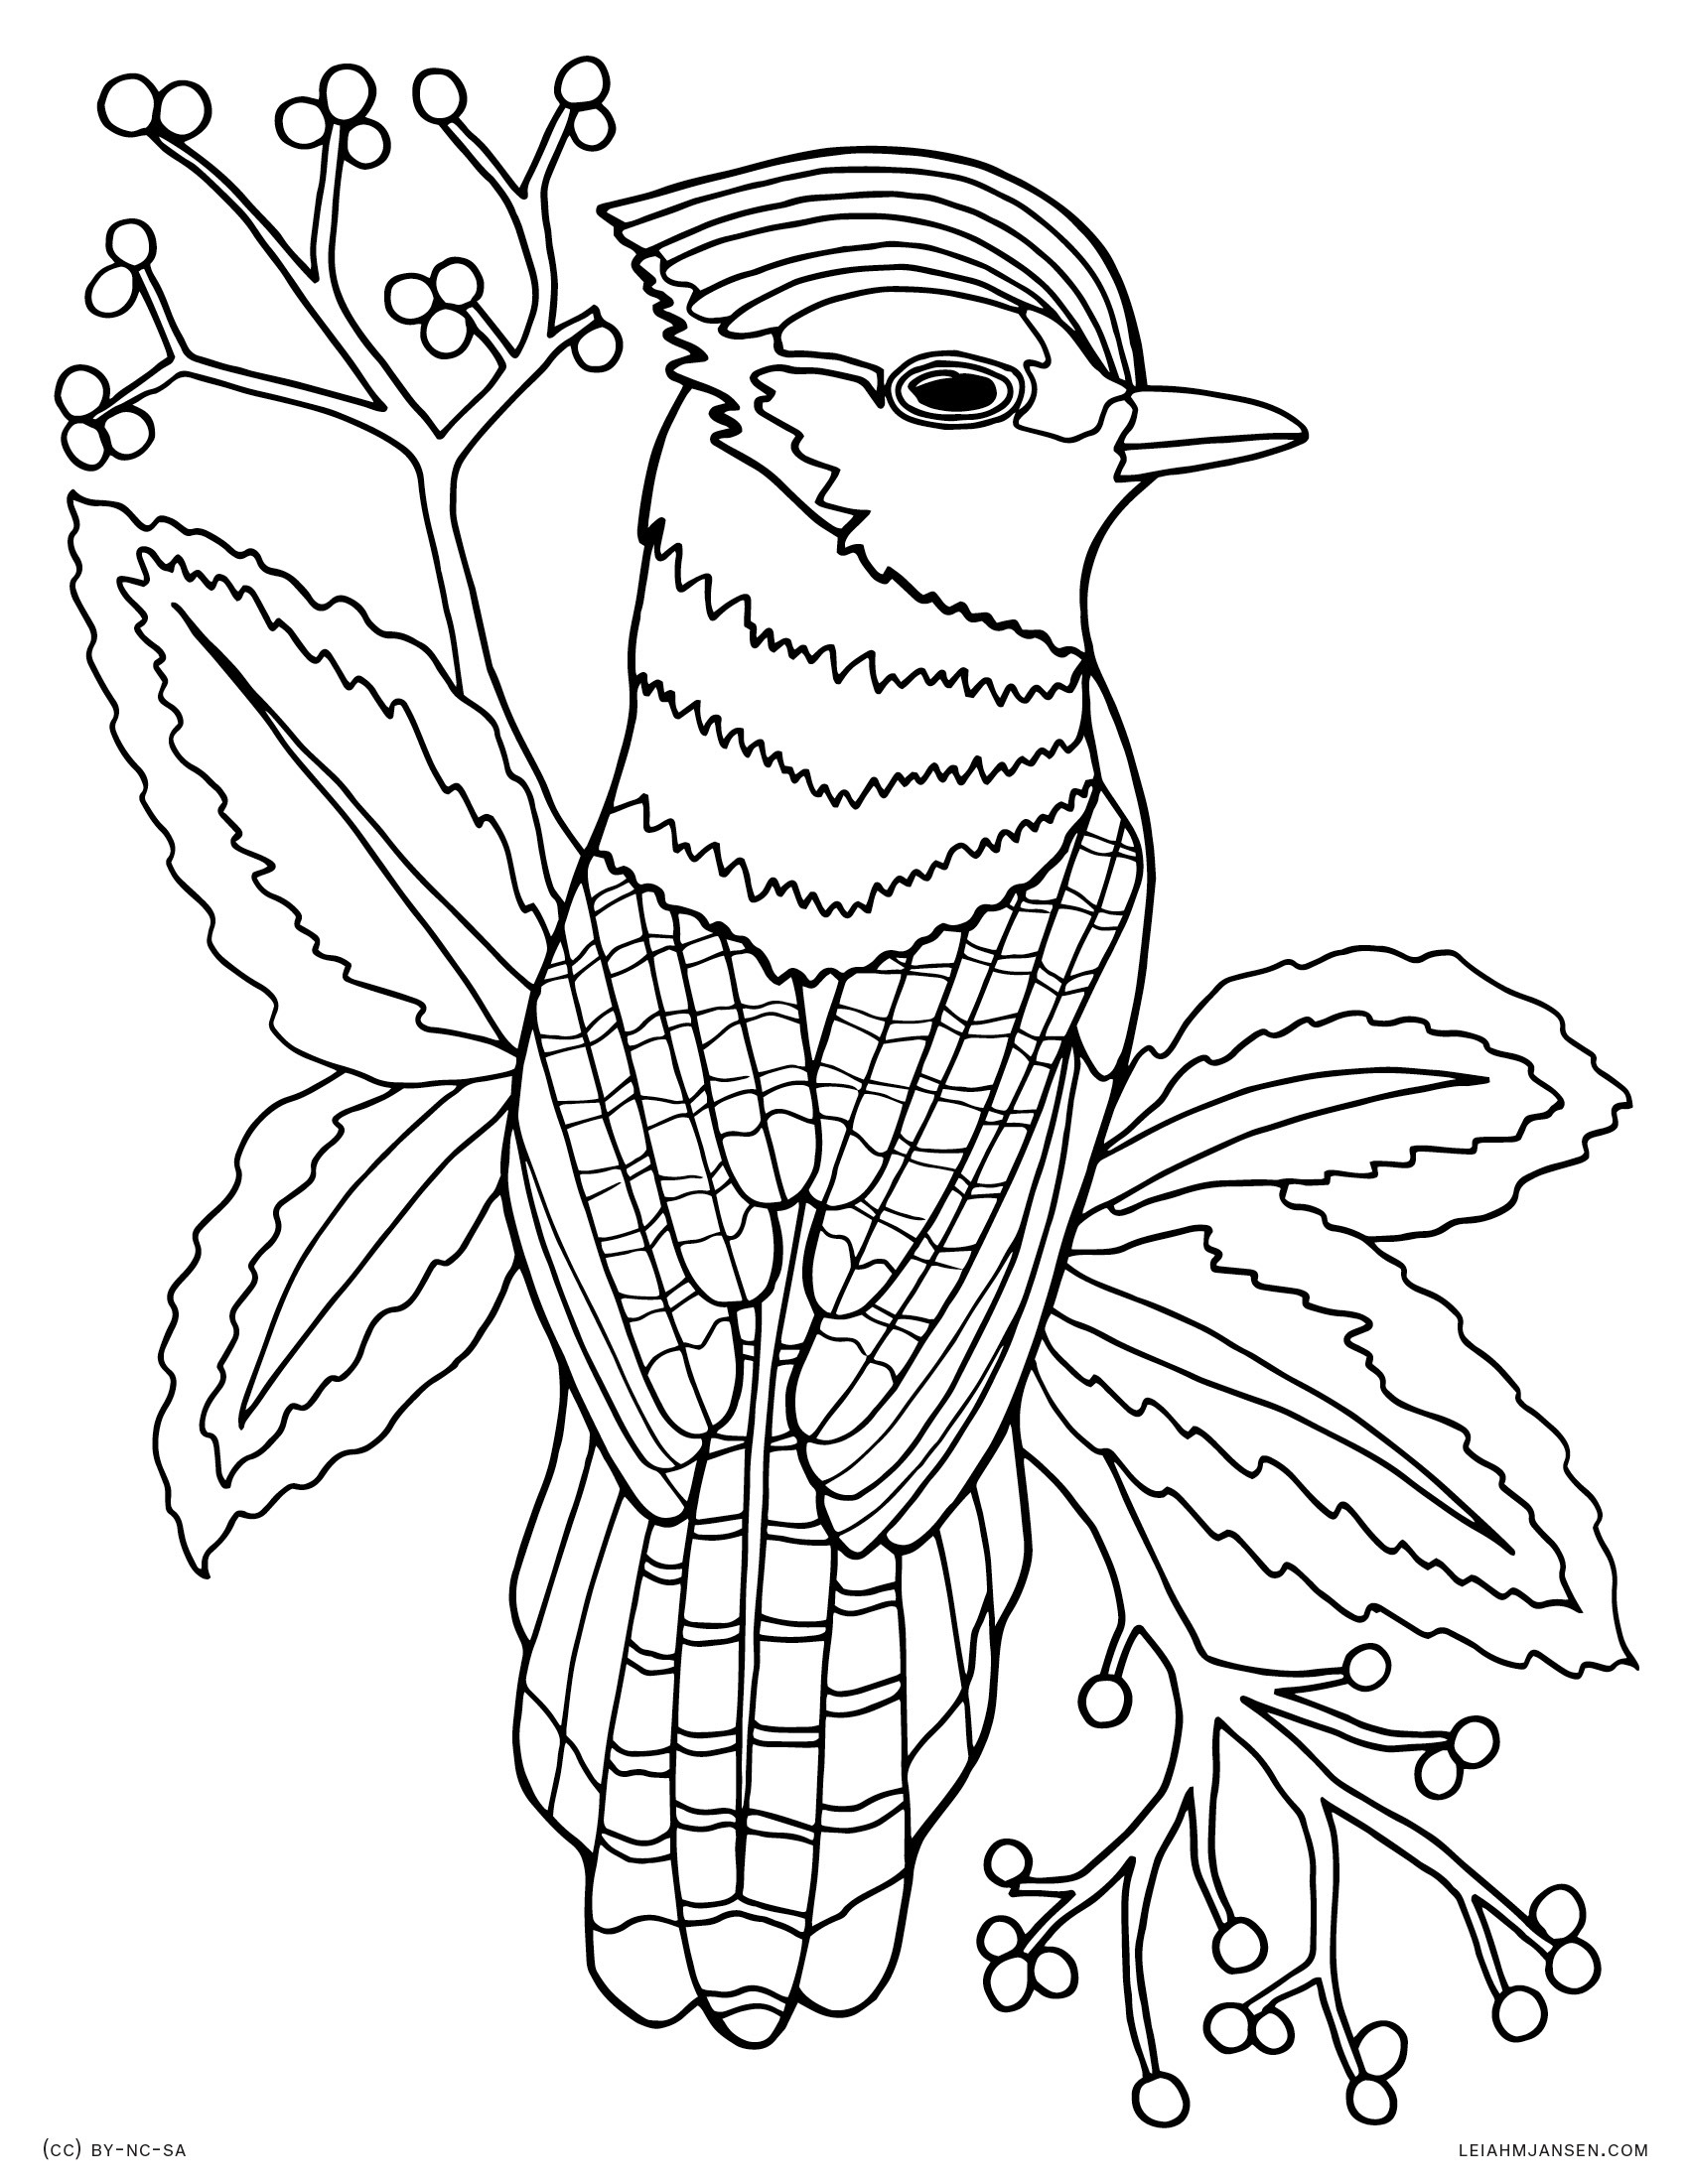 free coloring pages of realistic animals title görüntüler ile desenler coloring animals pages free of realistic